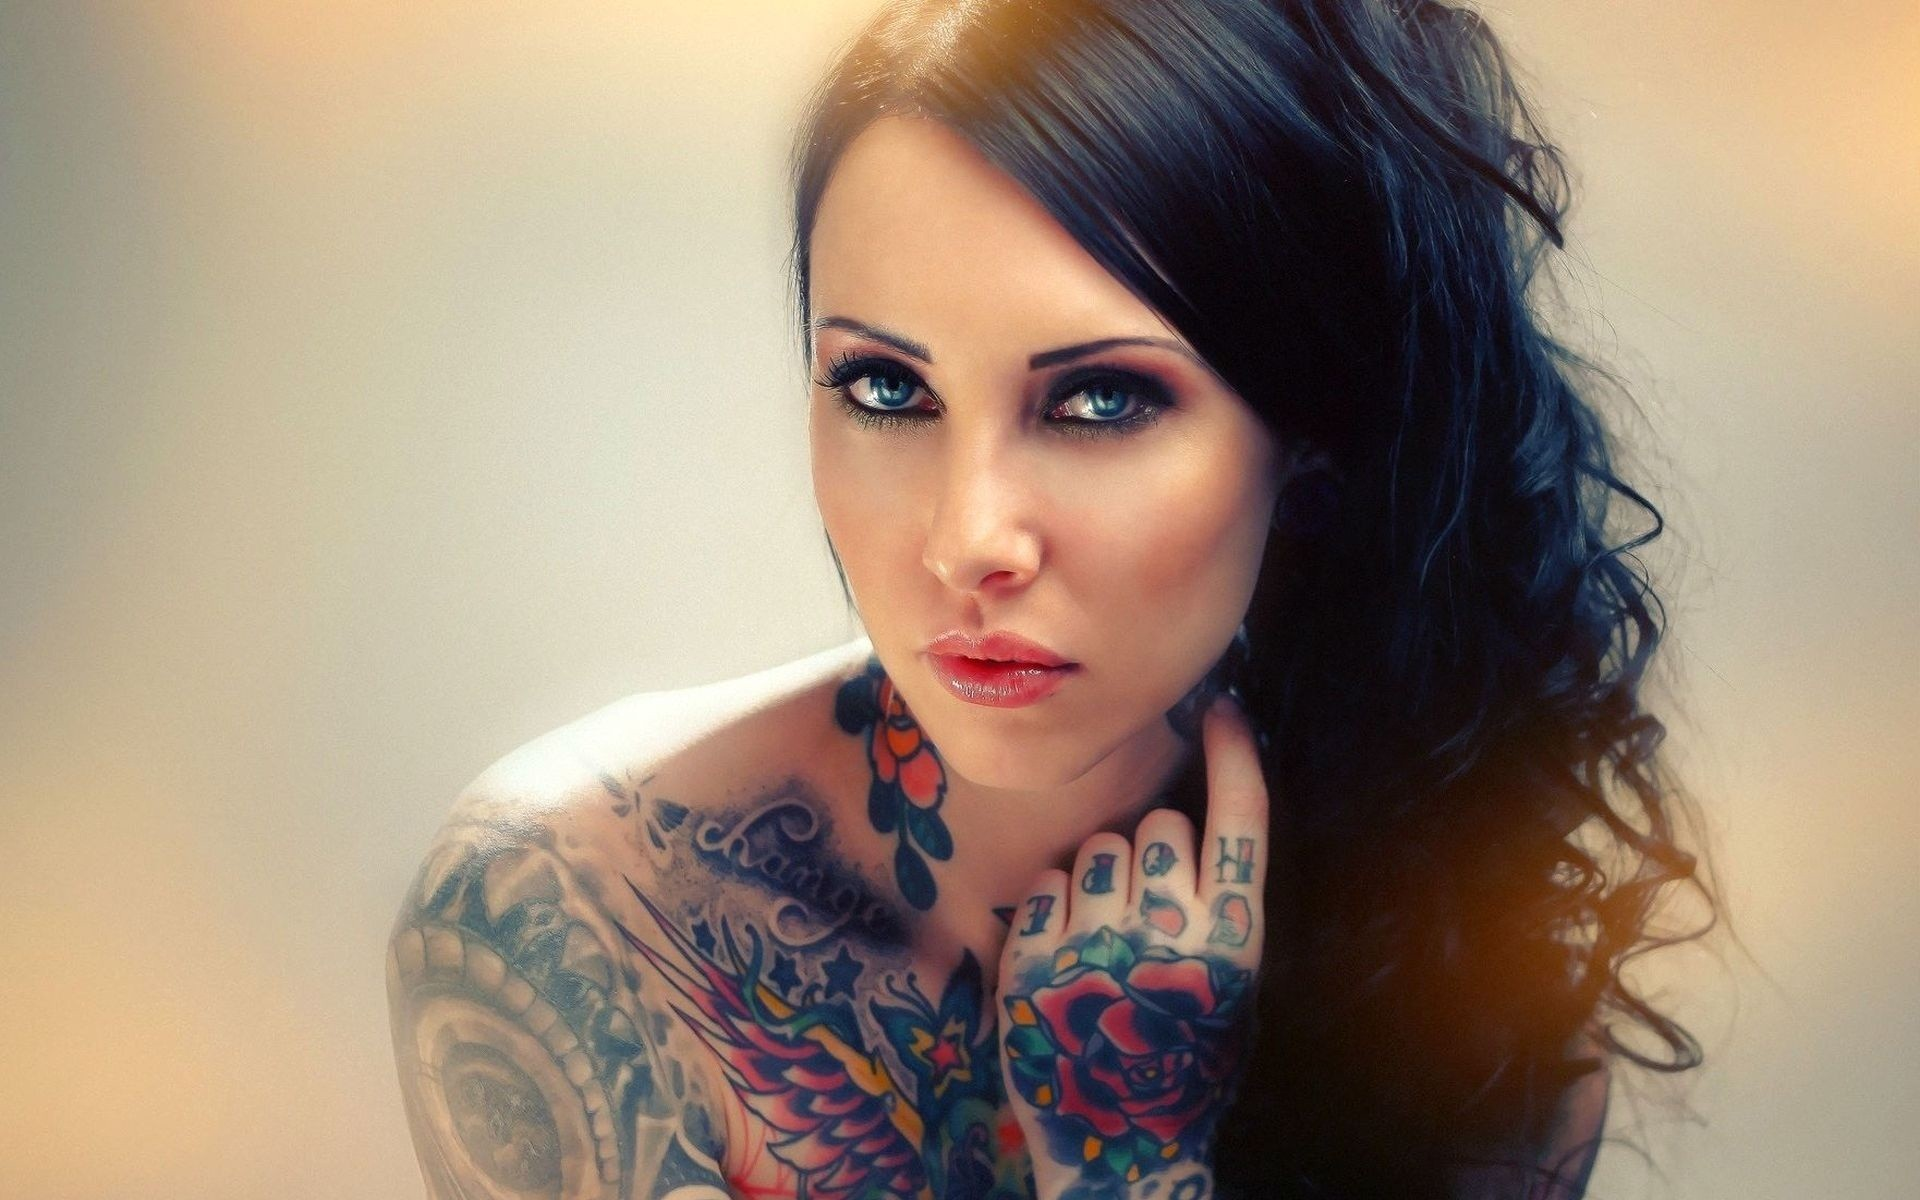 Questions That Girls With Tattoos Are Tired Of Hearing - Join The Party!